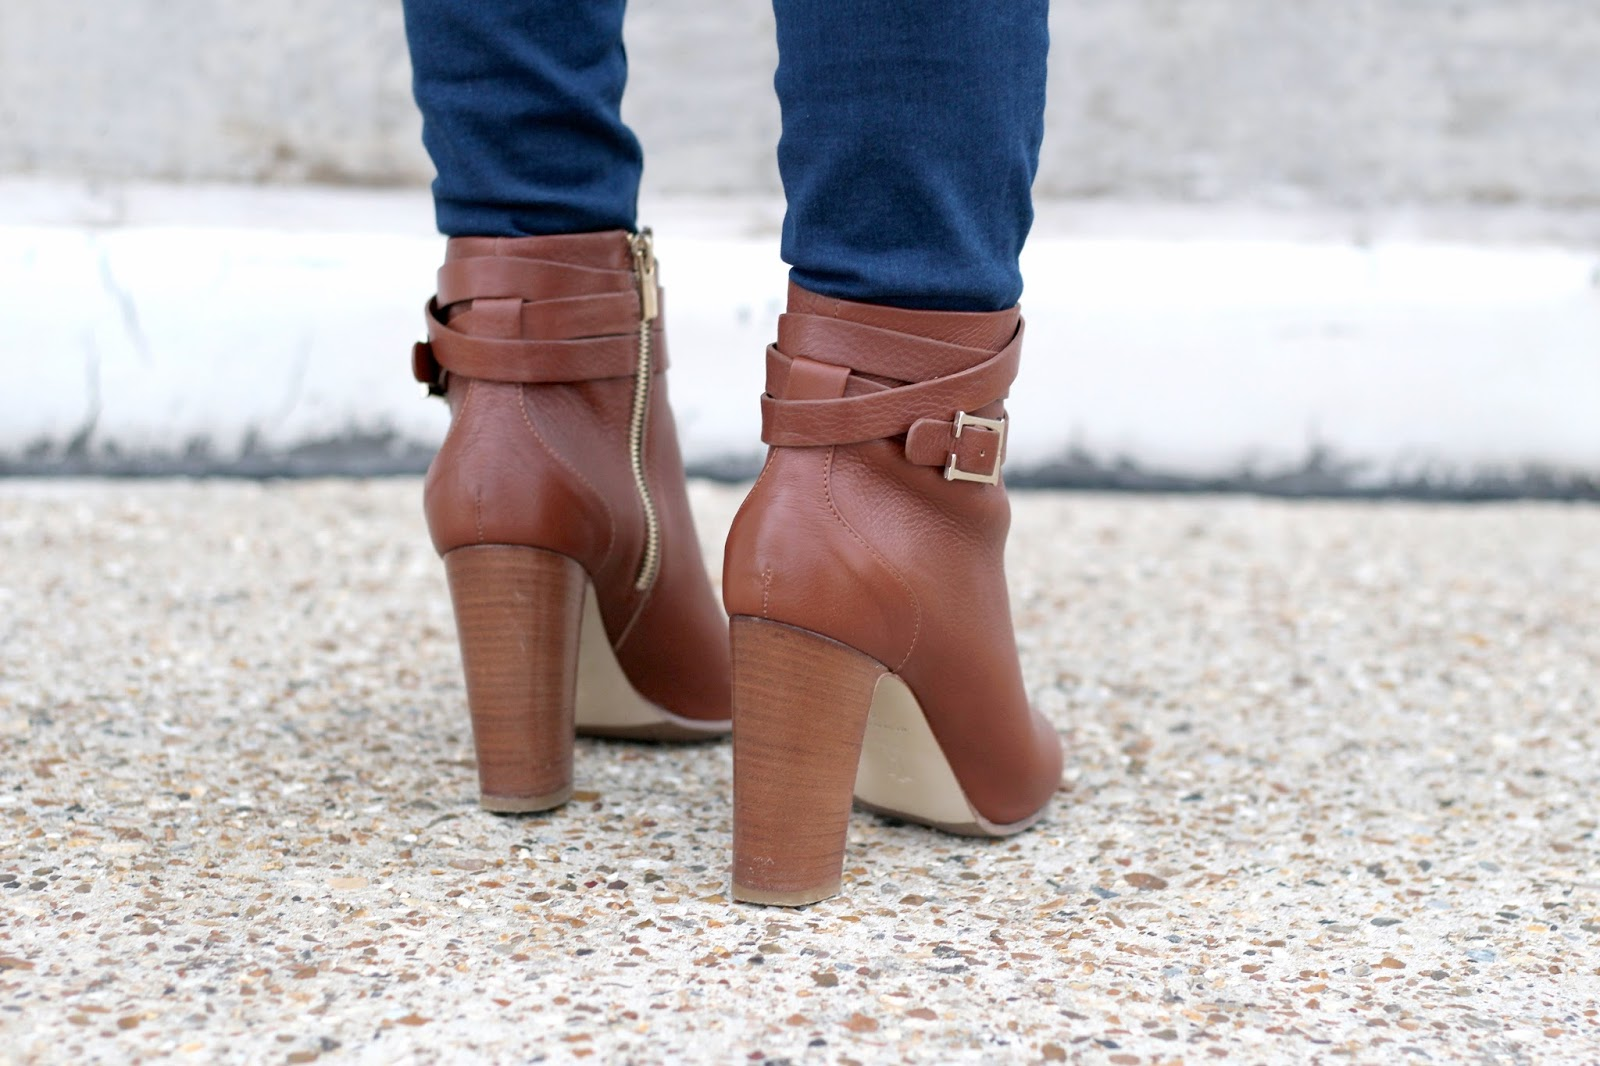 Very high brown ankle boots by Hobbs